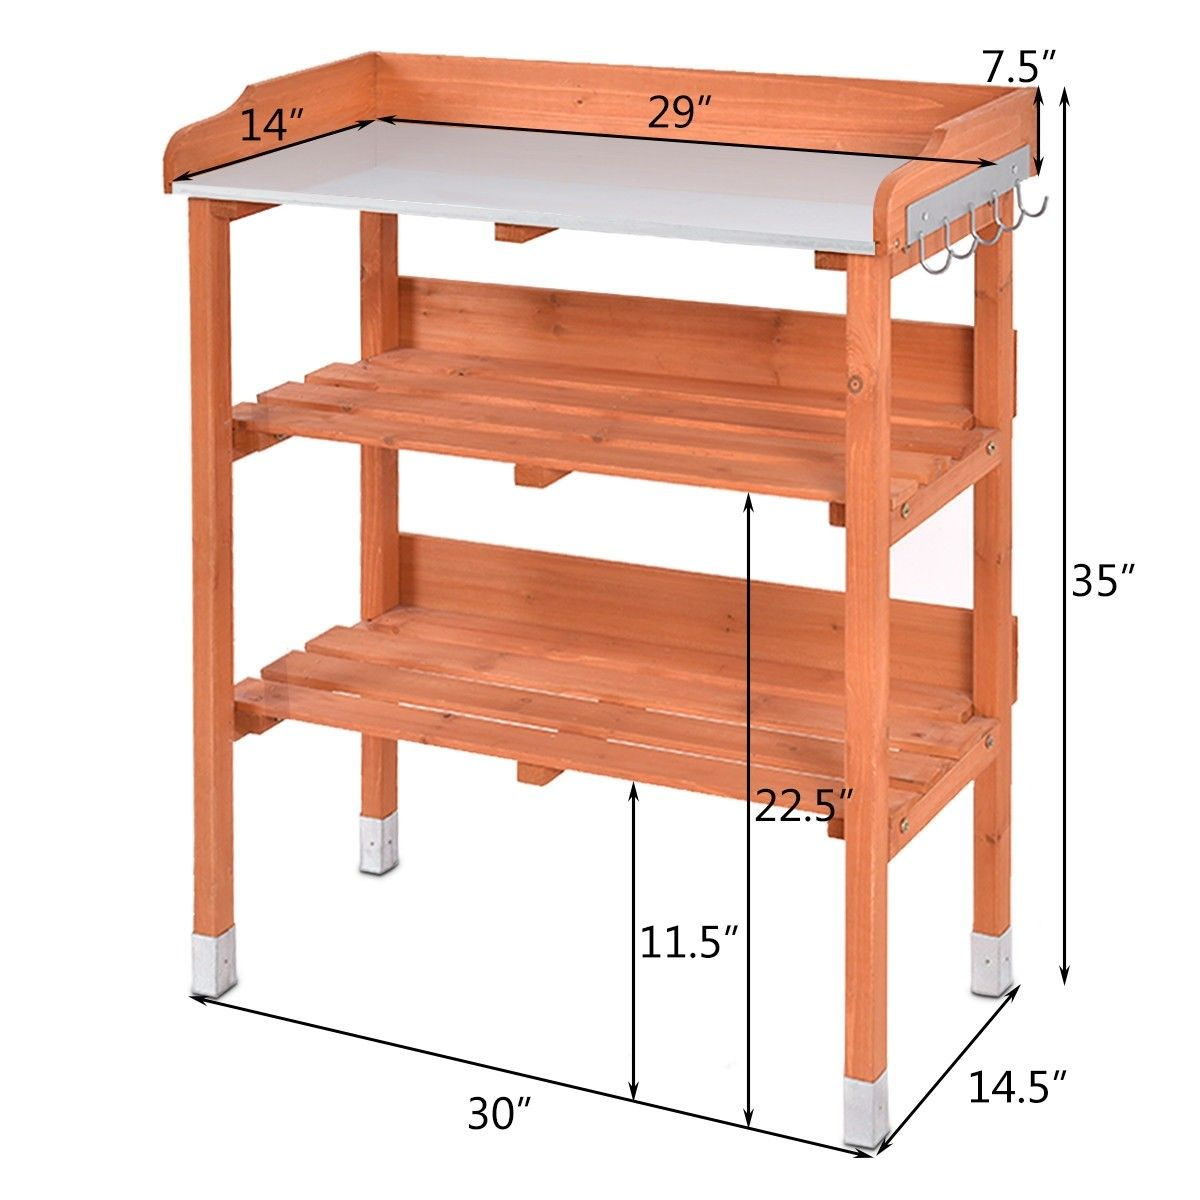 Garden Wooden Potting Bench Work Station With Hook Material Chinese Fir Wood And Metal Sheet Overall Dimension Potting Bench Garden Tool Storage Workstation